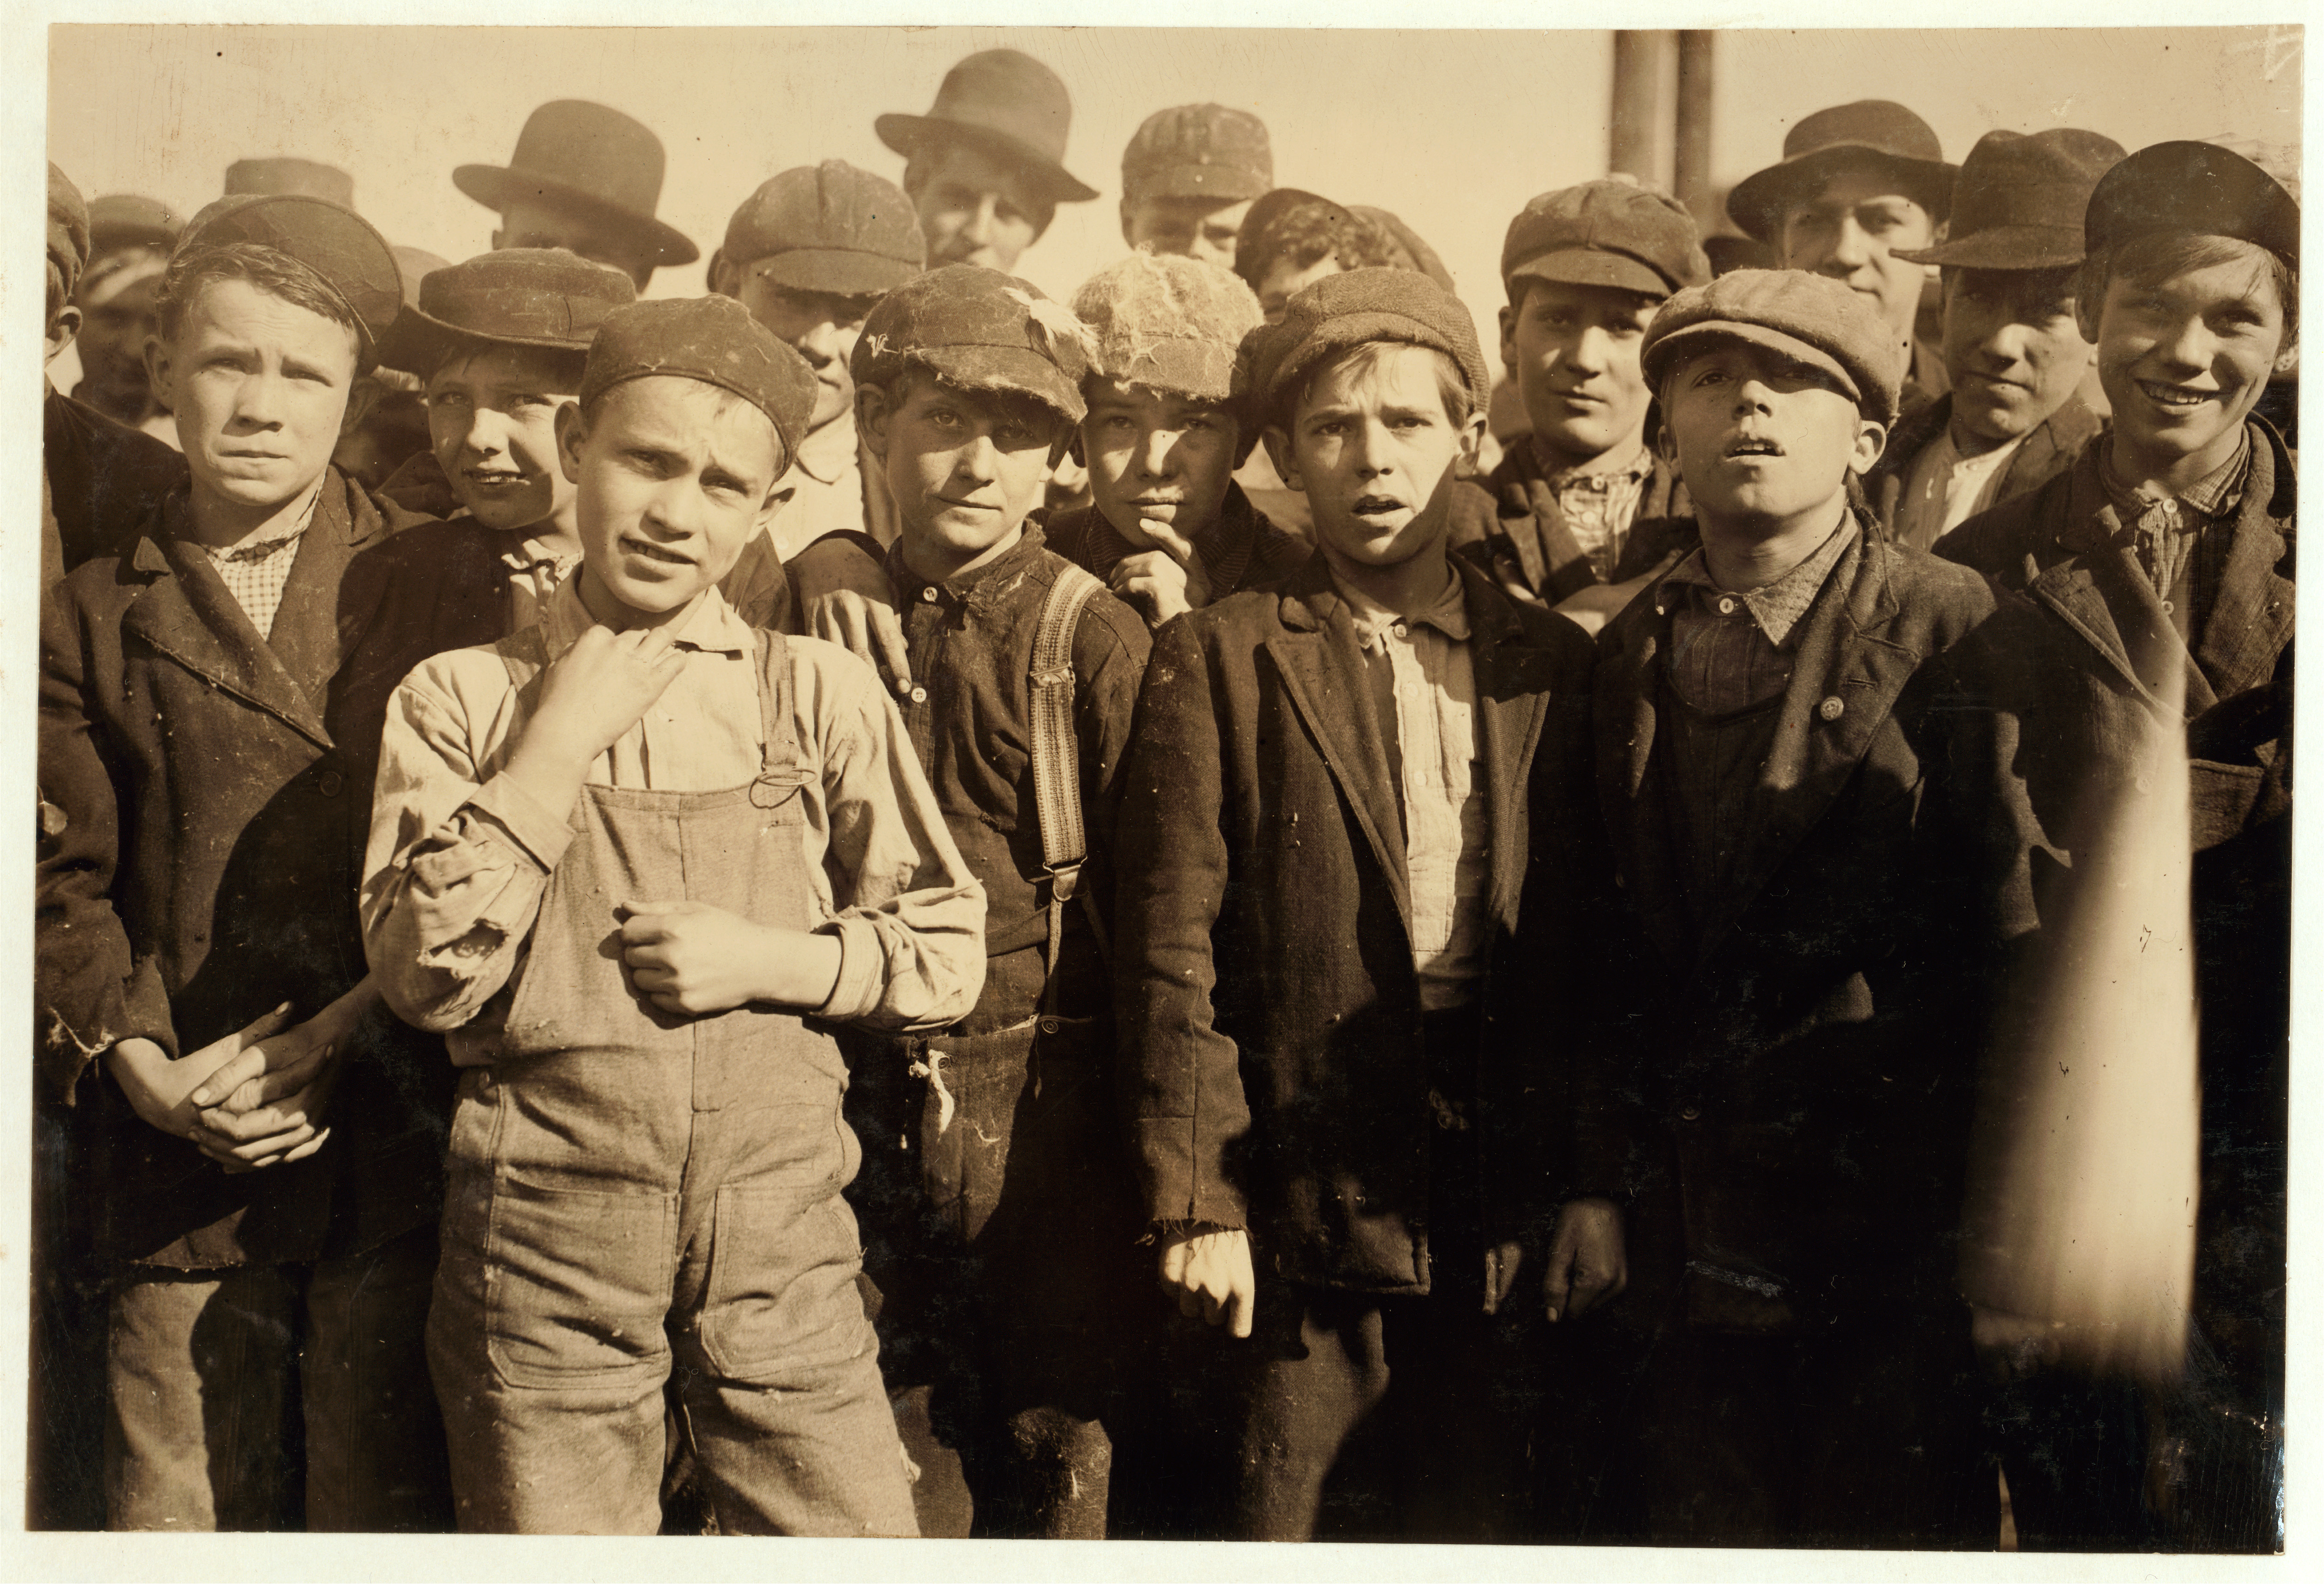 Doffer boys in Knoxville Cotton Mills. Location: Knoxville, Tennessee. Photograph by Lewis Wickes Hine, December 1910. From the National Child Labor Committee.  From the Library of Congress.